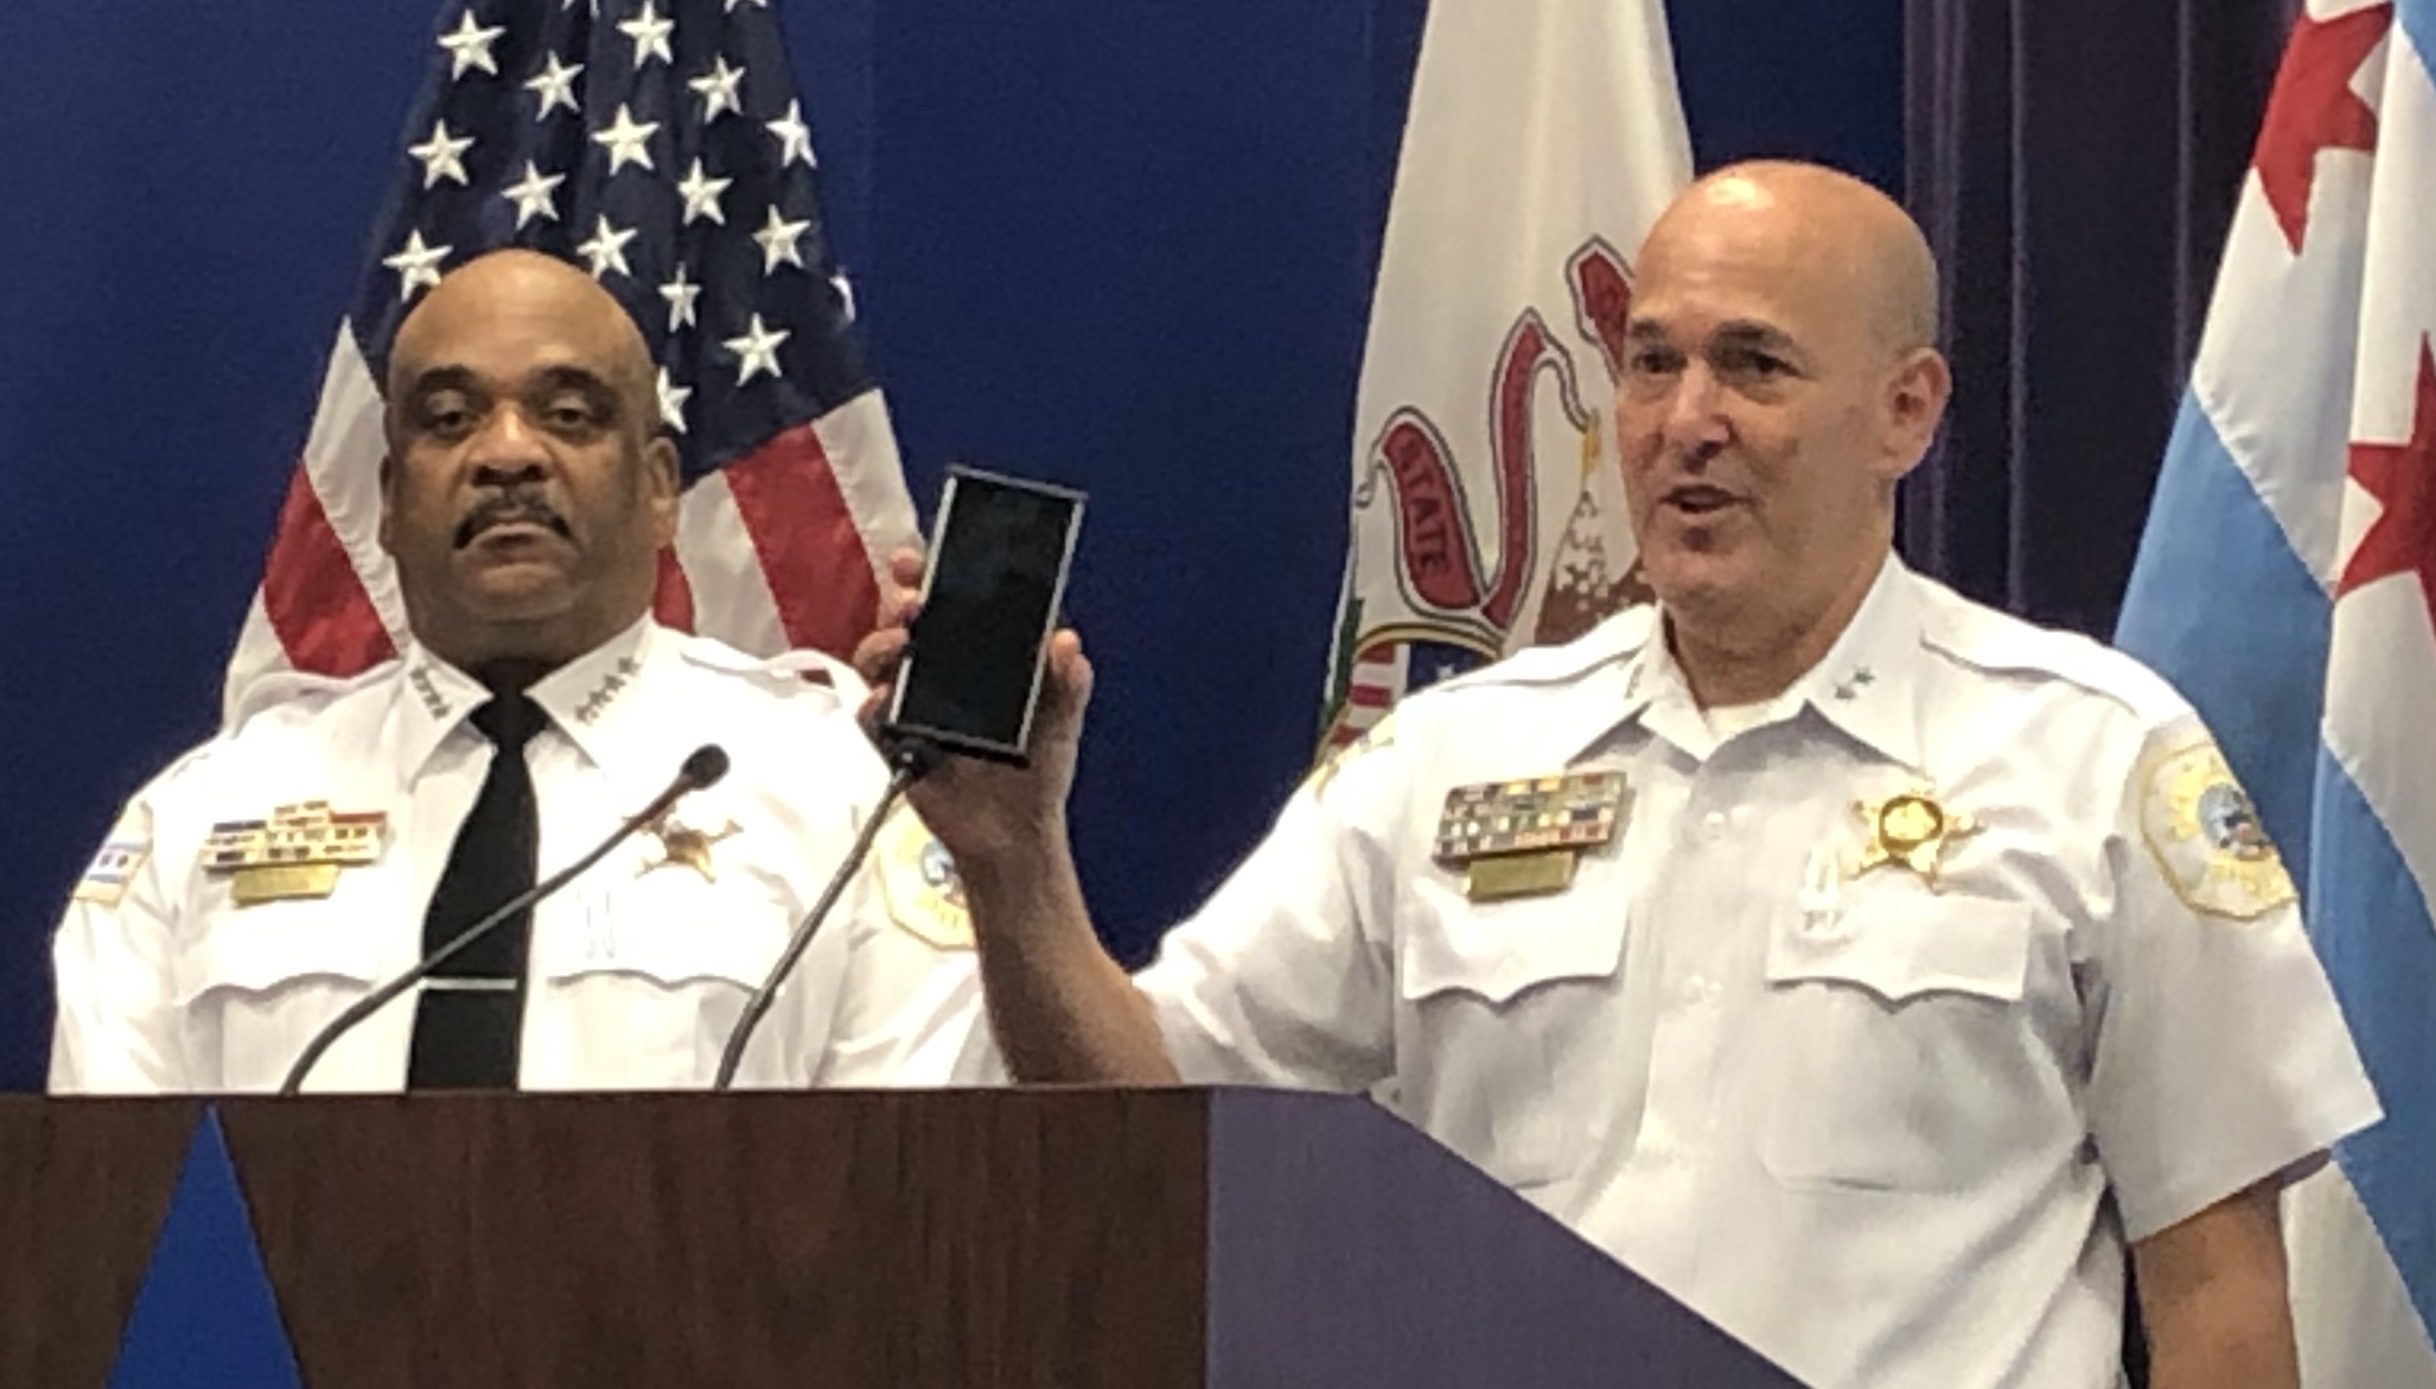 Jonathan Lewin, chief of the Chicago Police Department's Bureau of Technological Services, and Police Superintendent Eddie Johnson at a news conference Wednesday, Aug. 21, 2019.